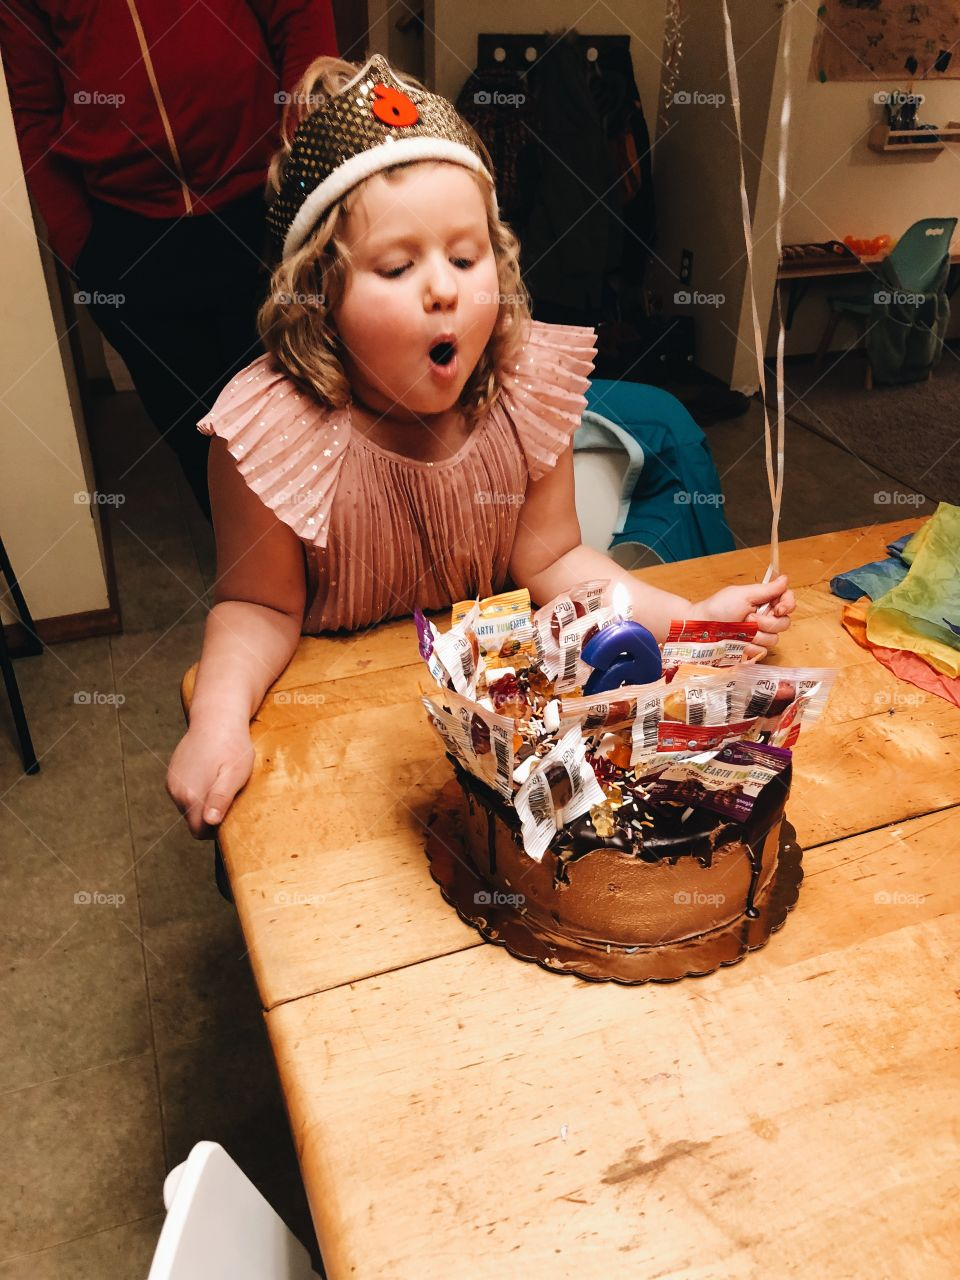 Child Blowing Out Birthday Candles